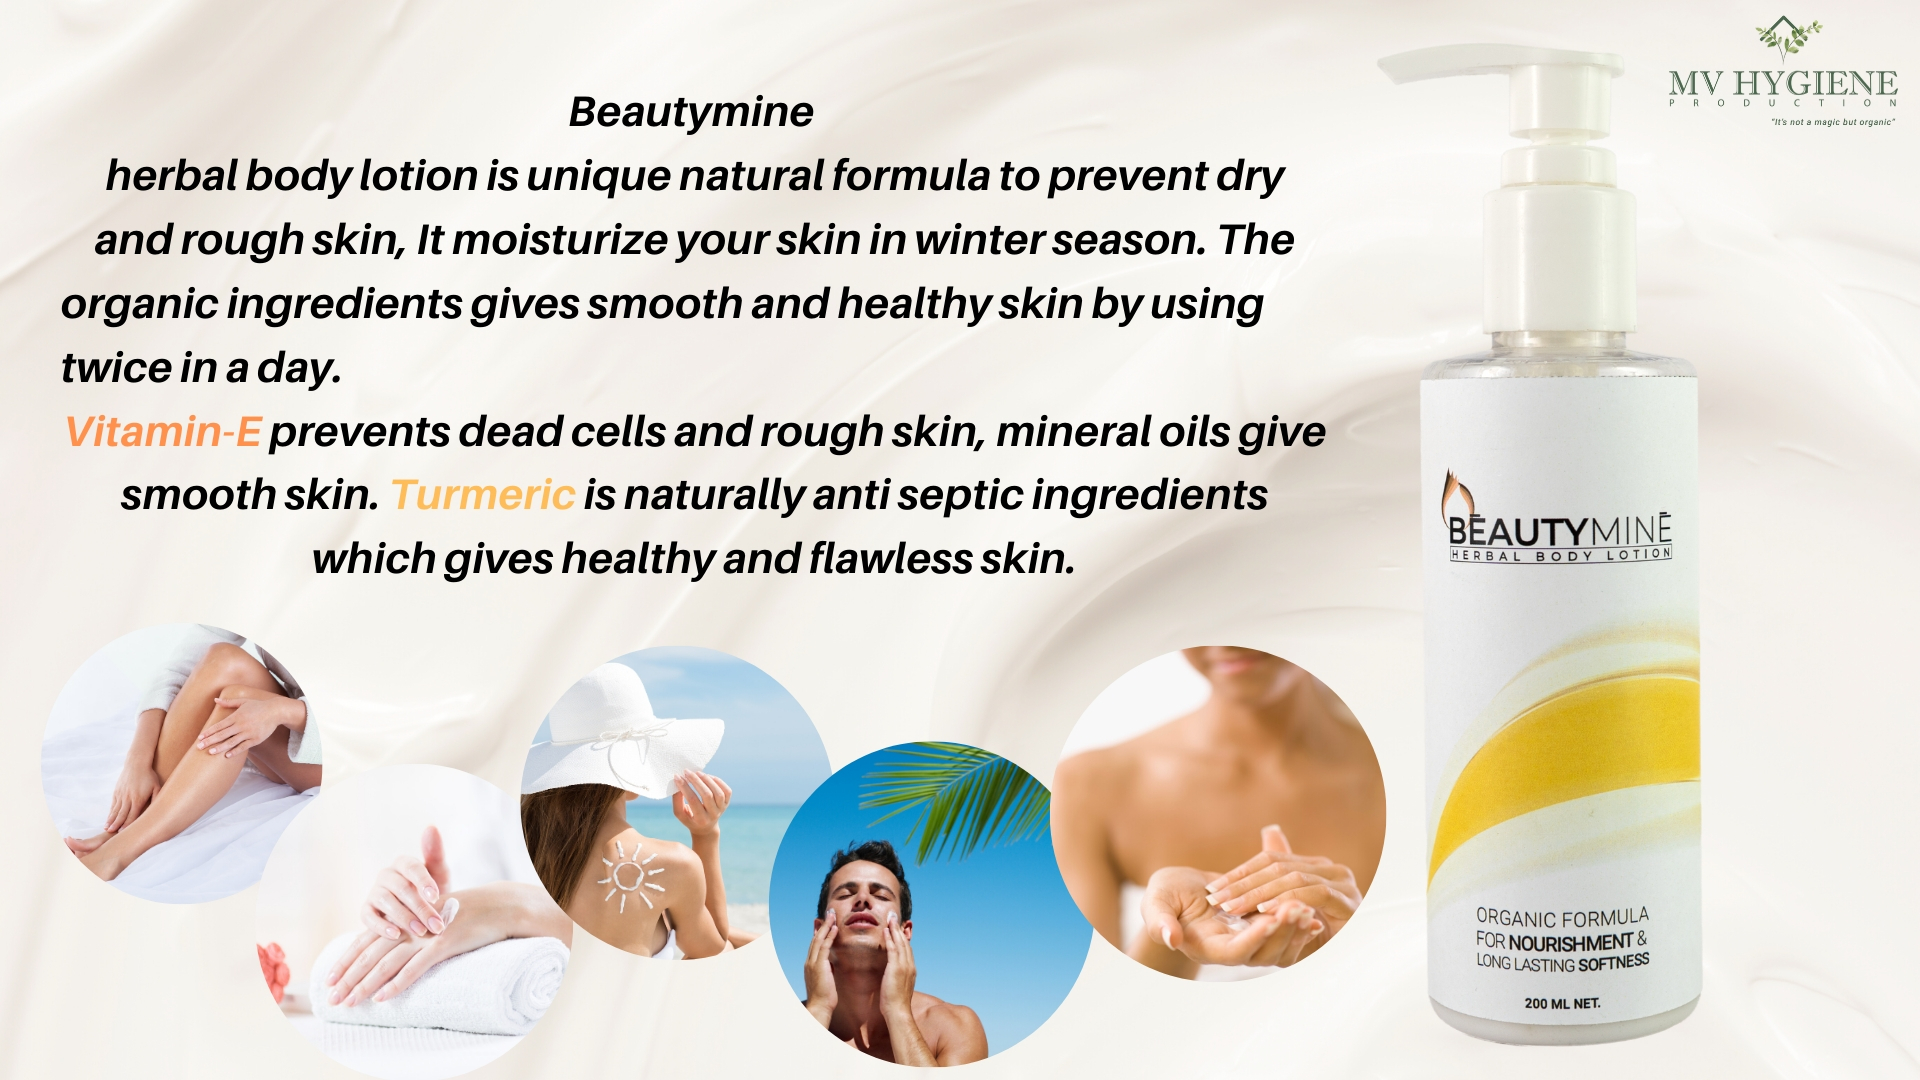 Beautymine Herbal Body Lotion